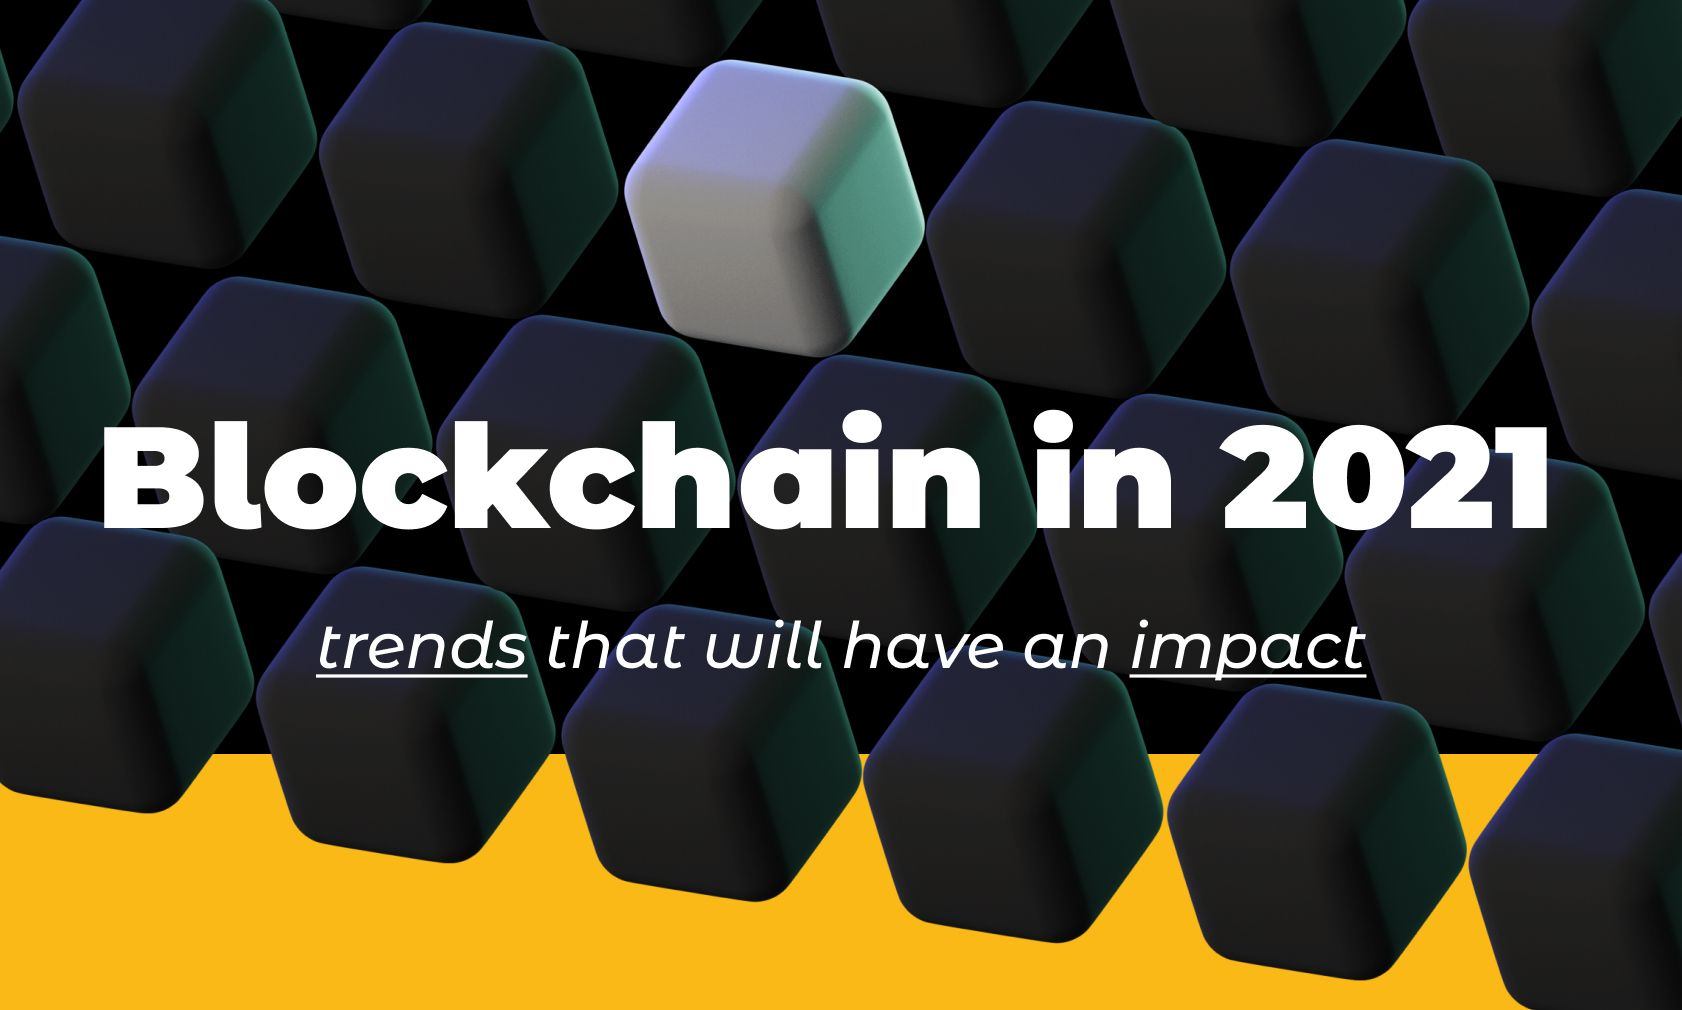 Blockchain in 2021: 4 trends that will have an impact